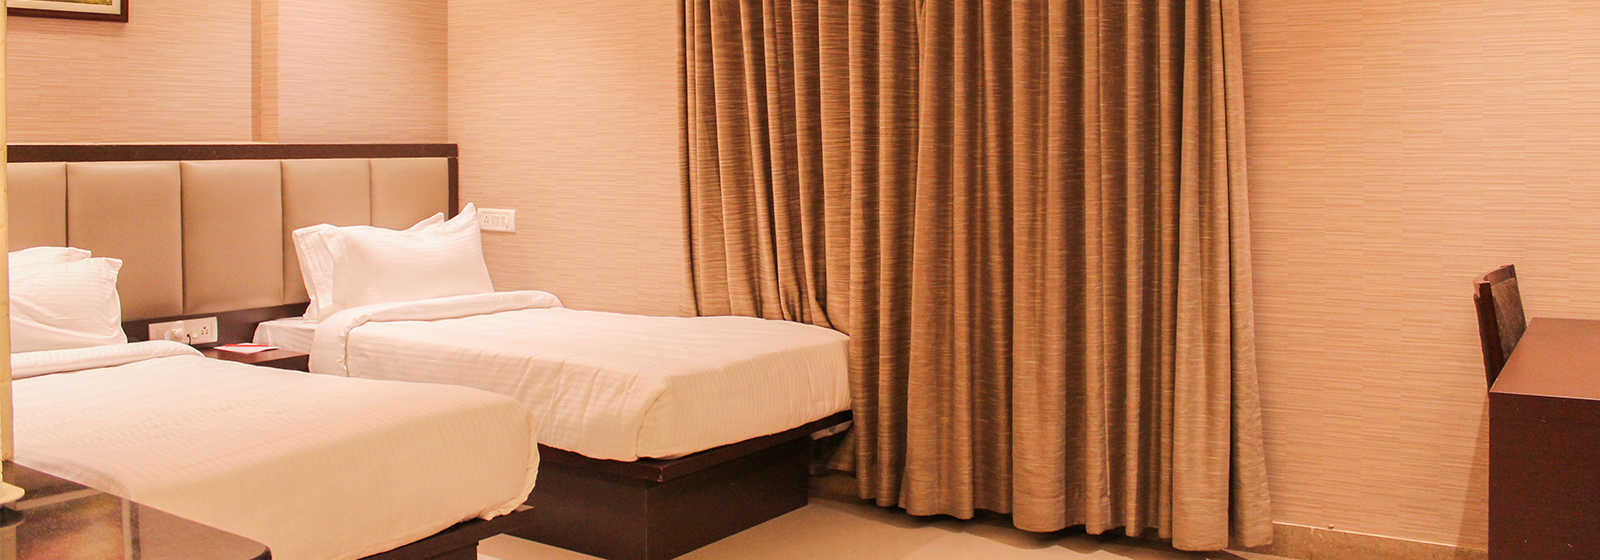 Super Deluxe Twin bedroom with white linen, study table, long curtains and AC at The Byke Signature hotel in Bangalore.